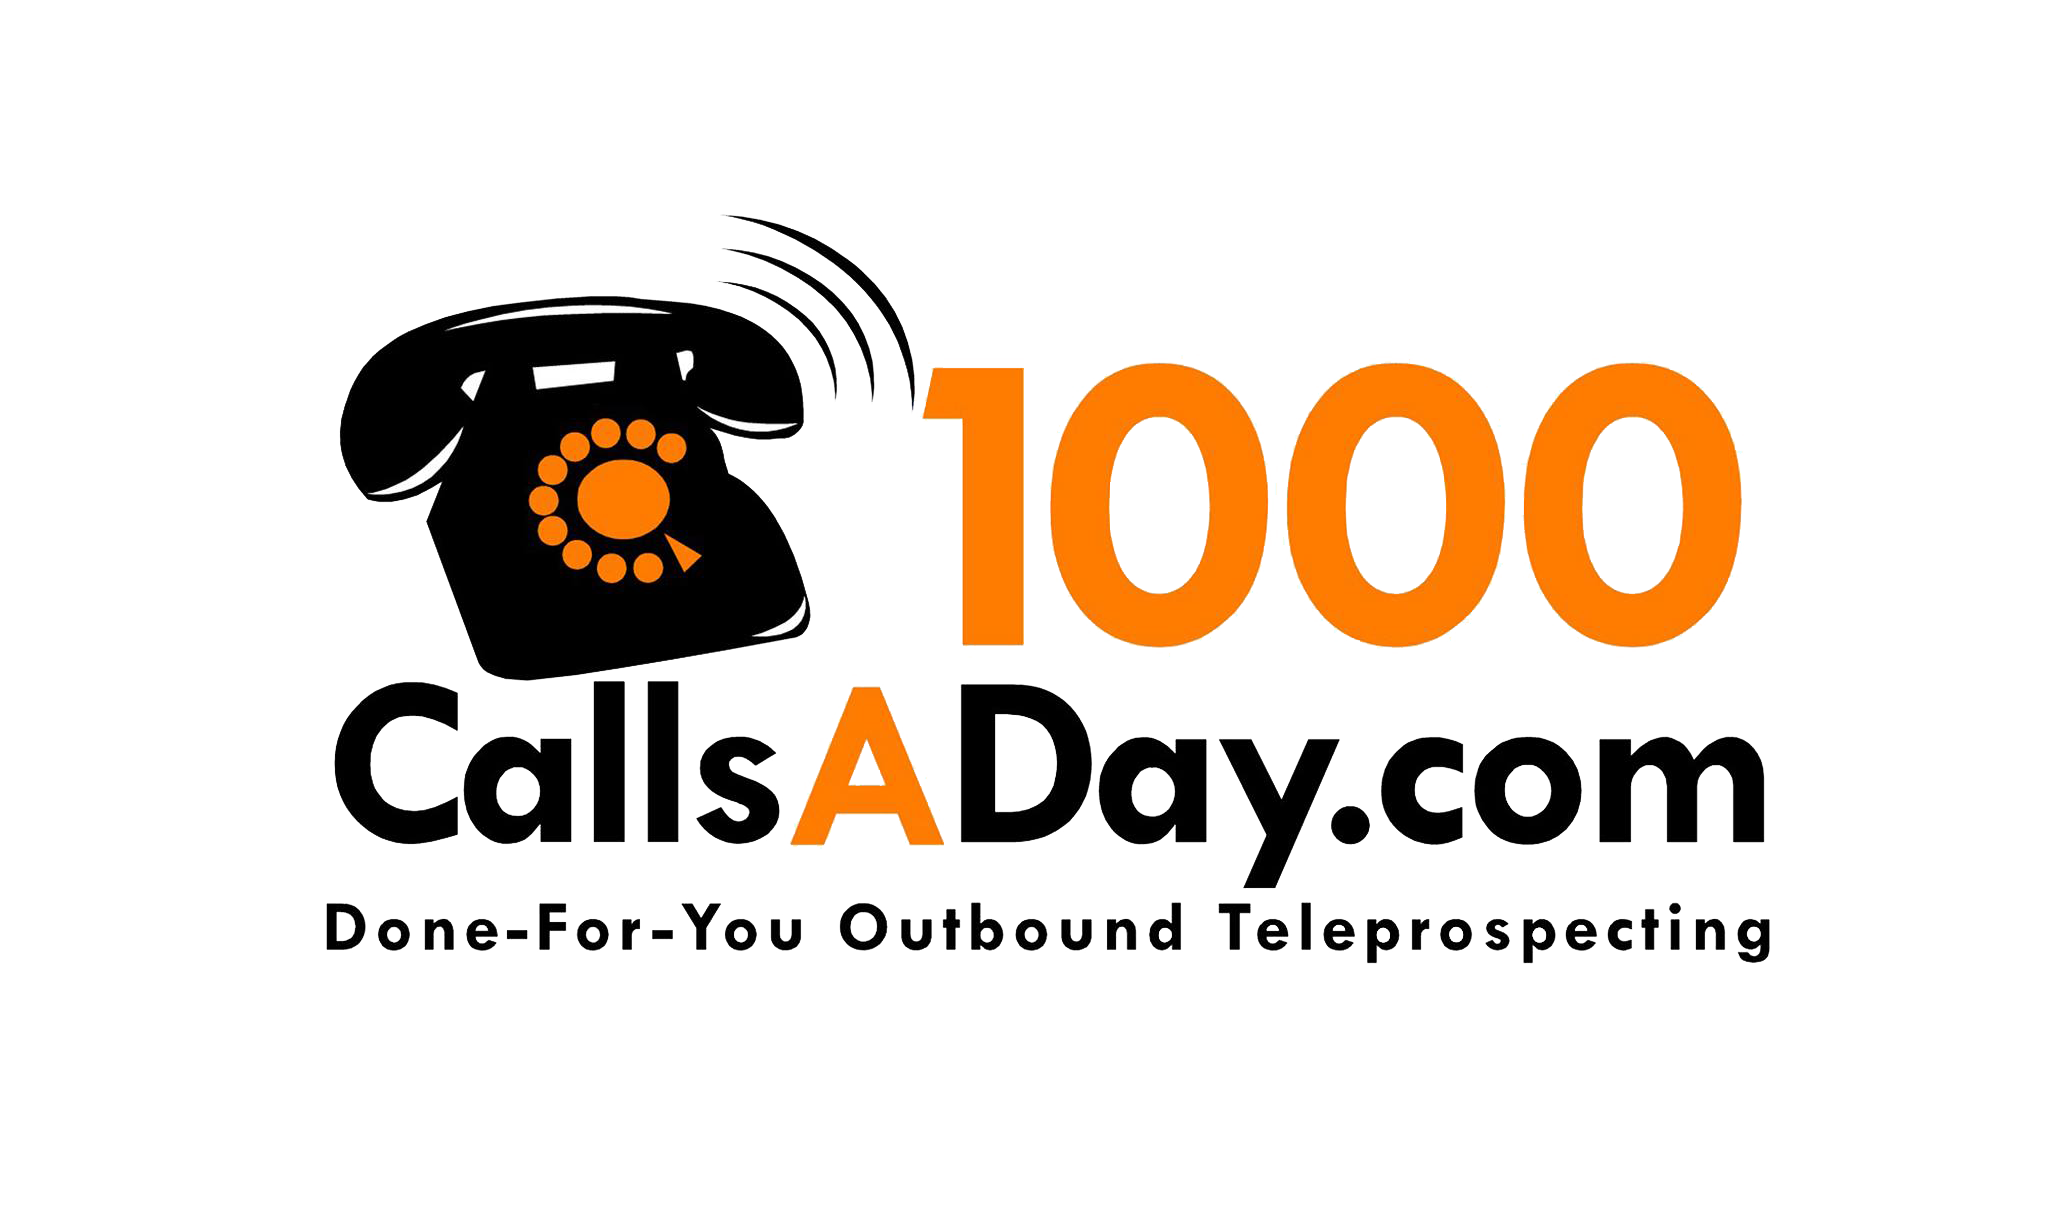 Everything You Need to Know About Working With 1000 Calls A Day